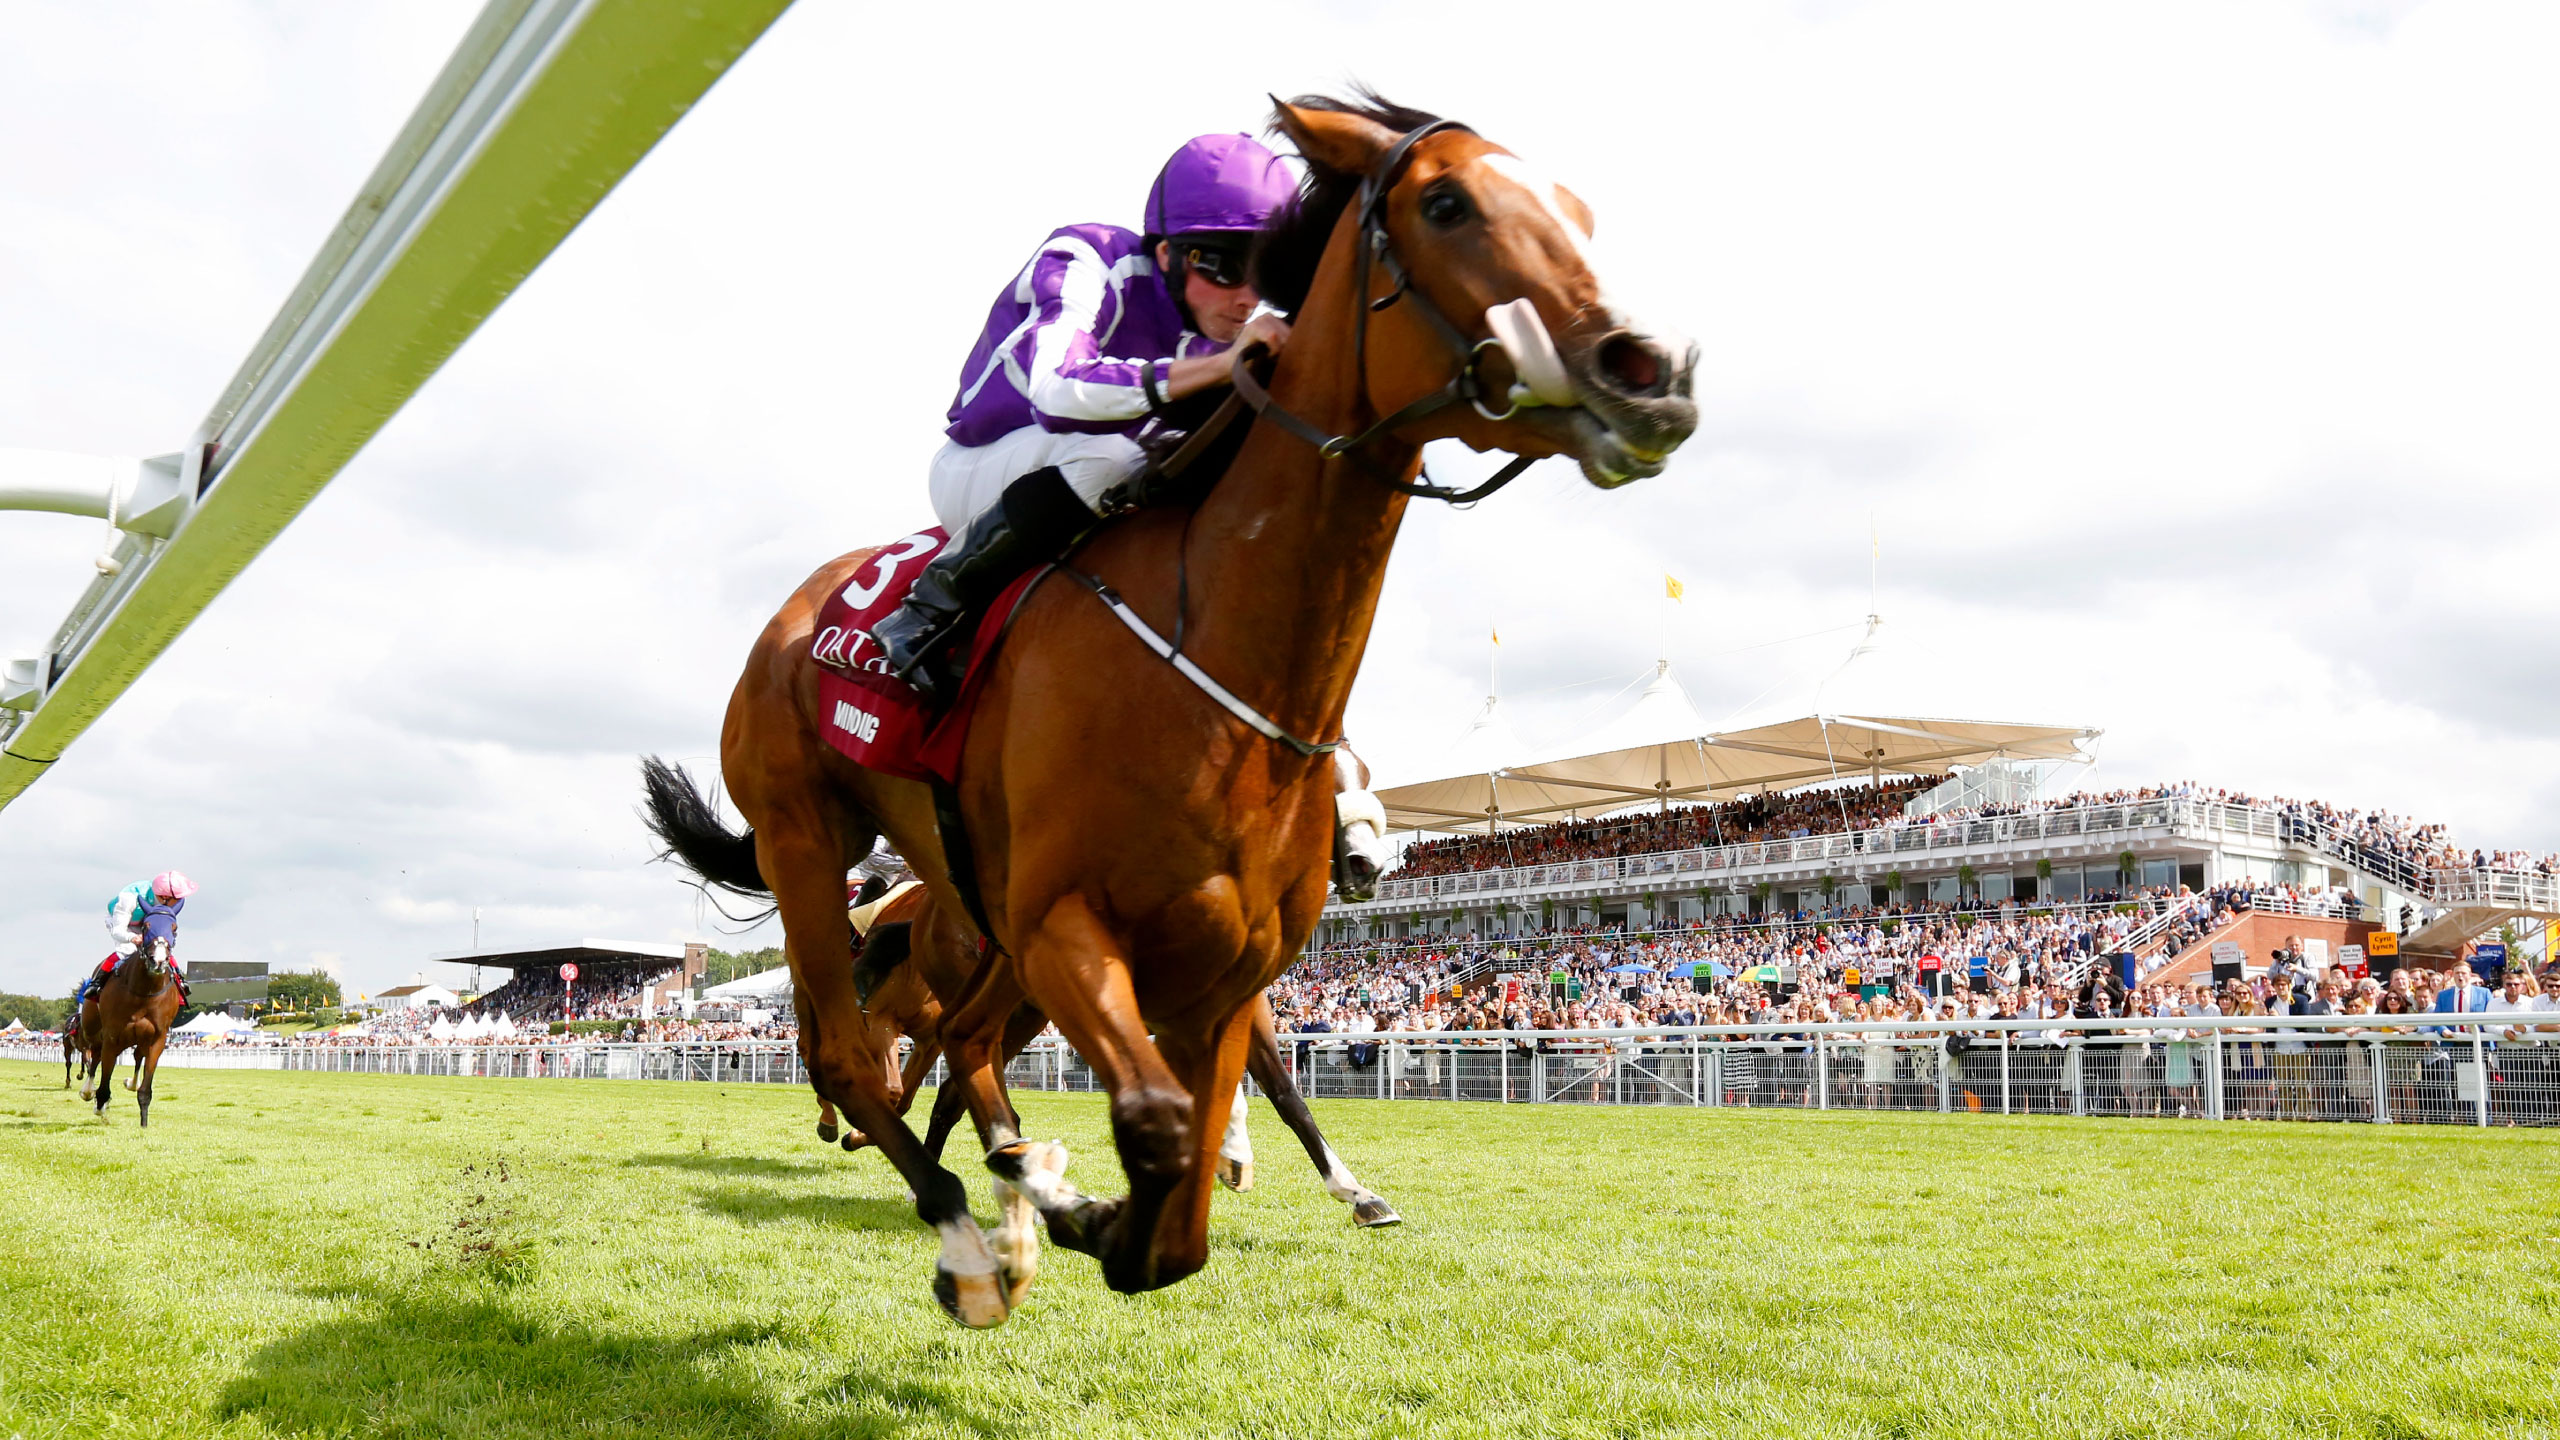 Thoroughbred Racing Statistics - Make Your Chance Strong Of Winning Horse Race